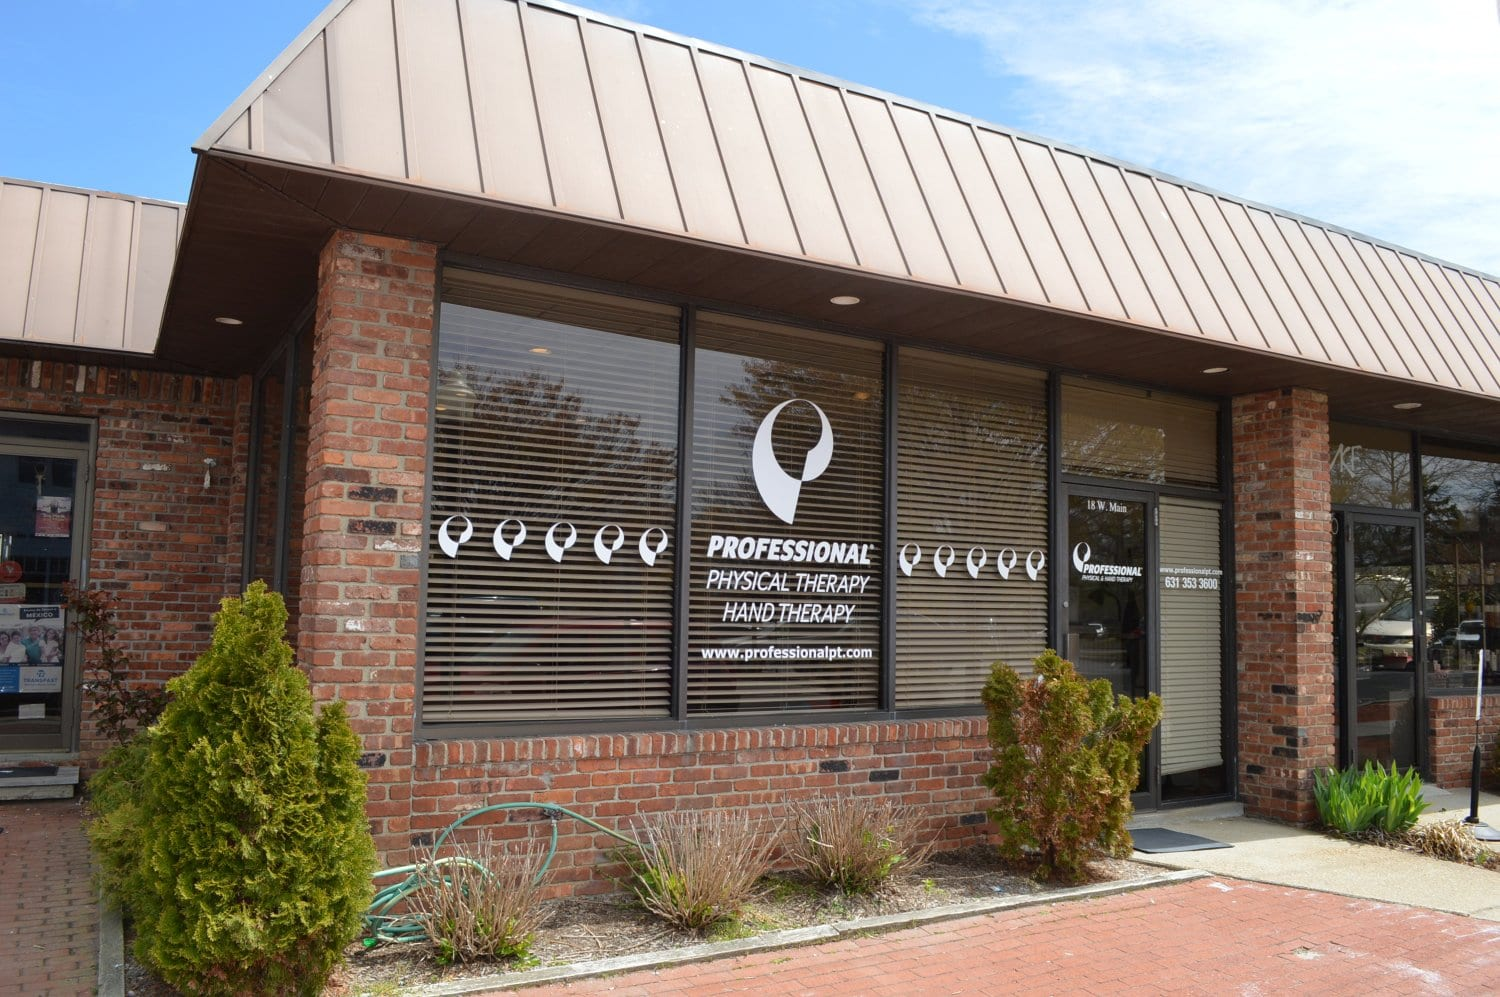 Here is an exterior shot of our physical therapy clinic in Southampton, New York.